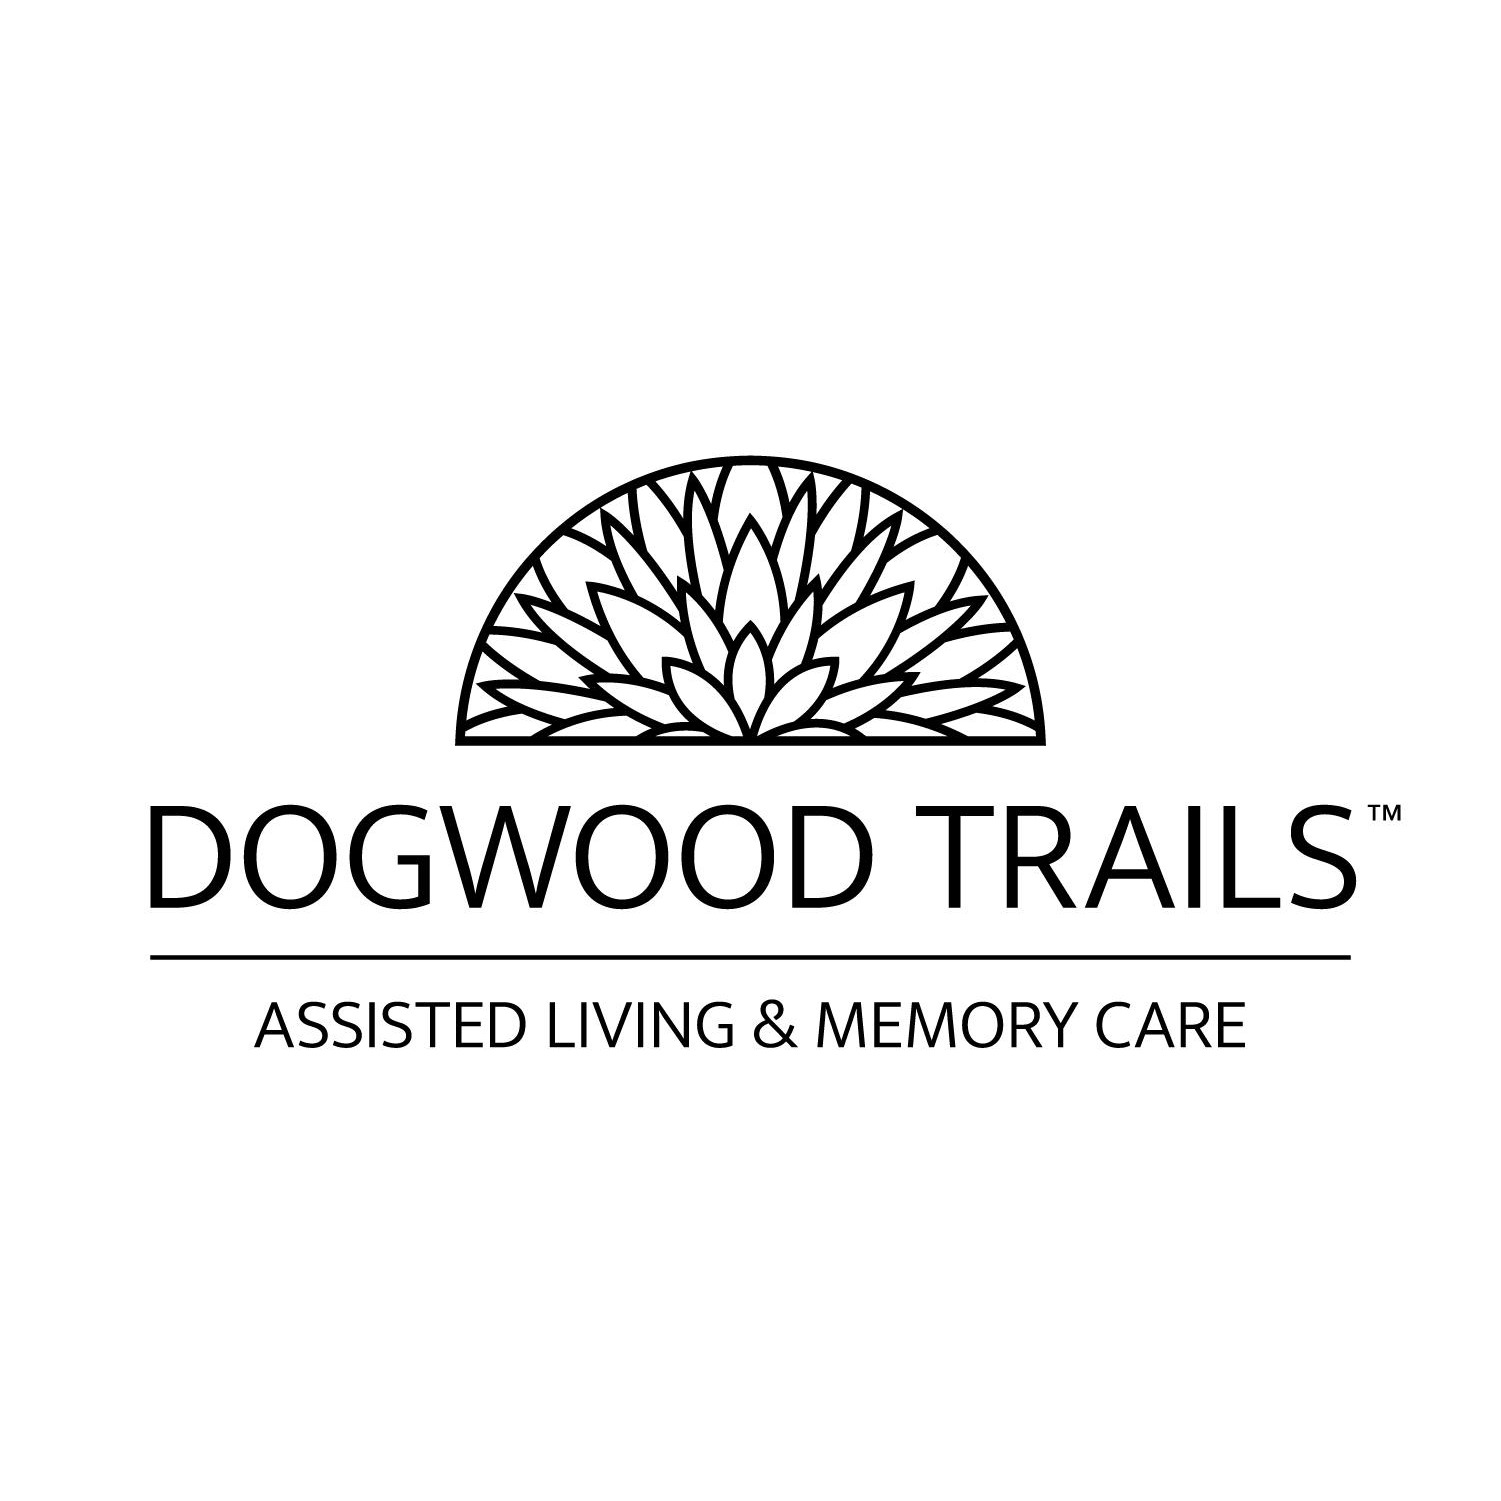 Dogwood Trails Assisted Living and Memory Care logo